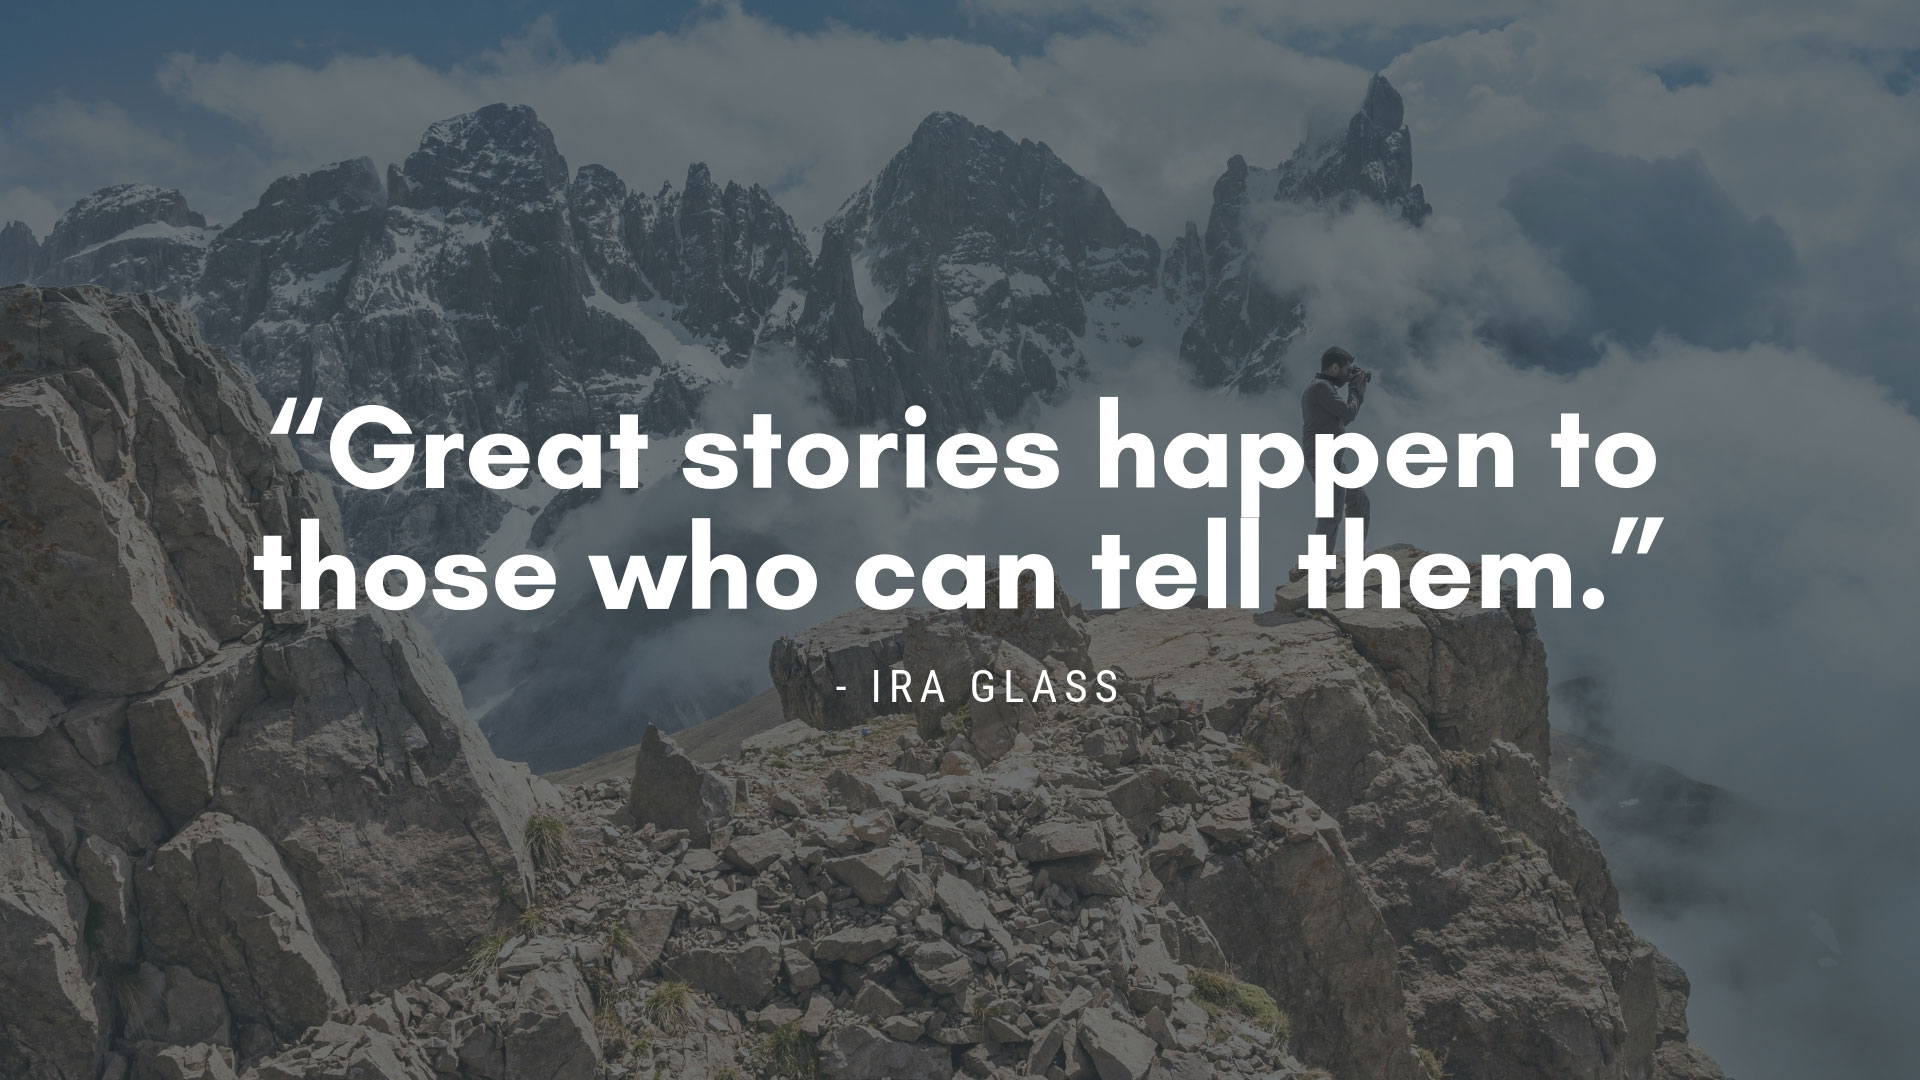 Ira Glass Storytelling Quote